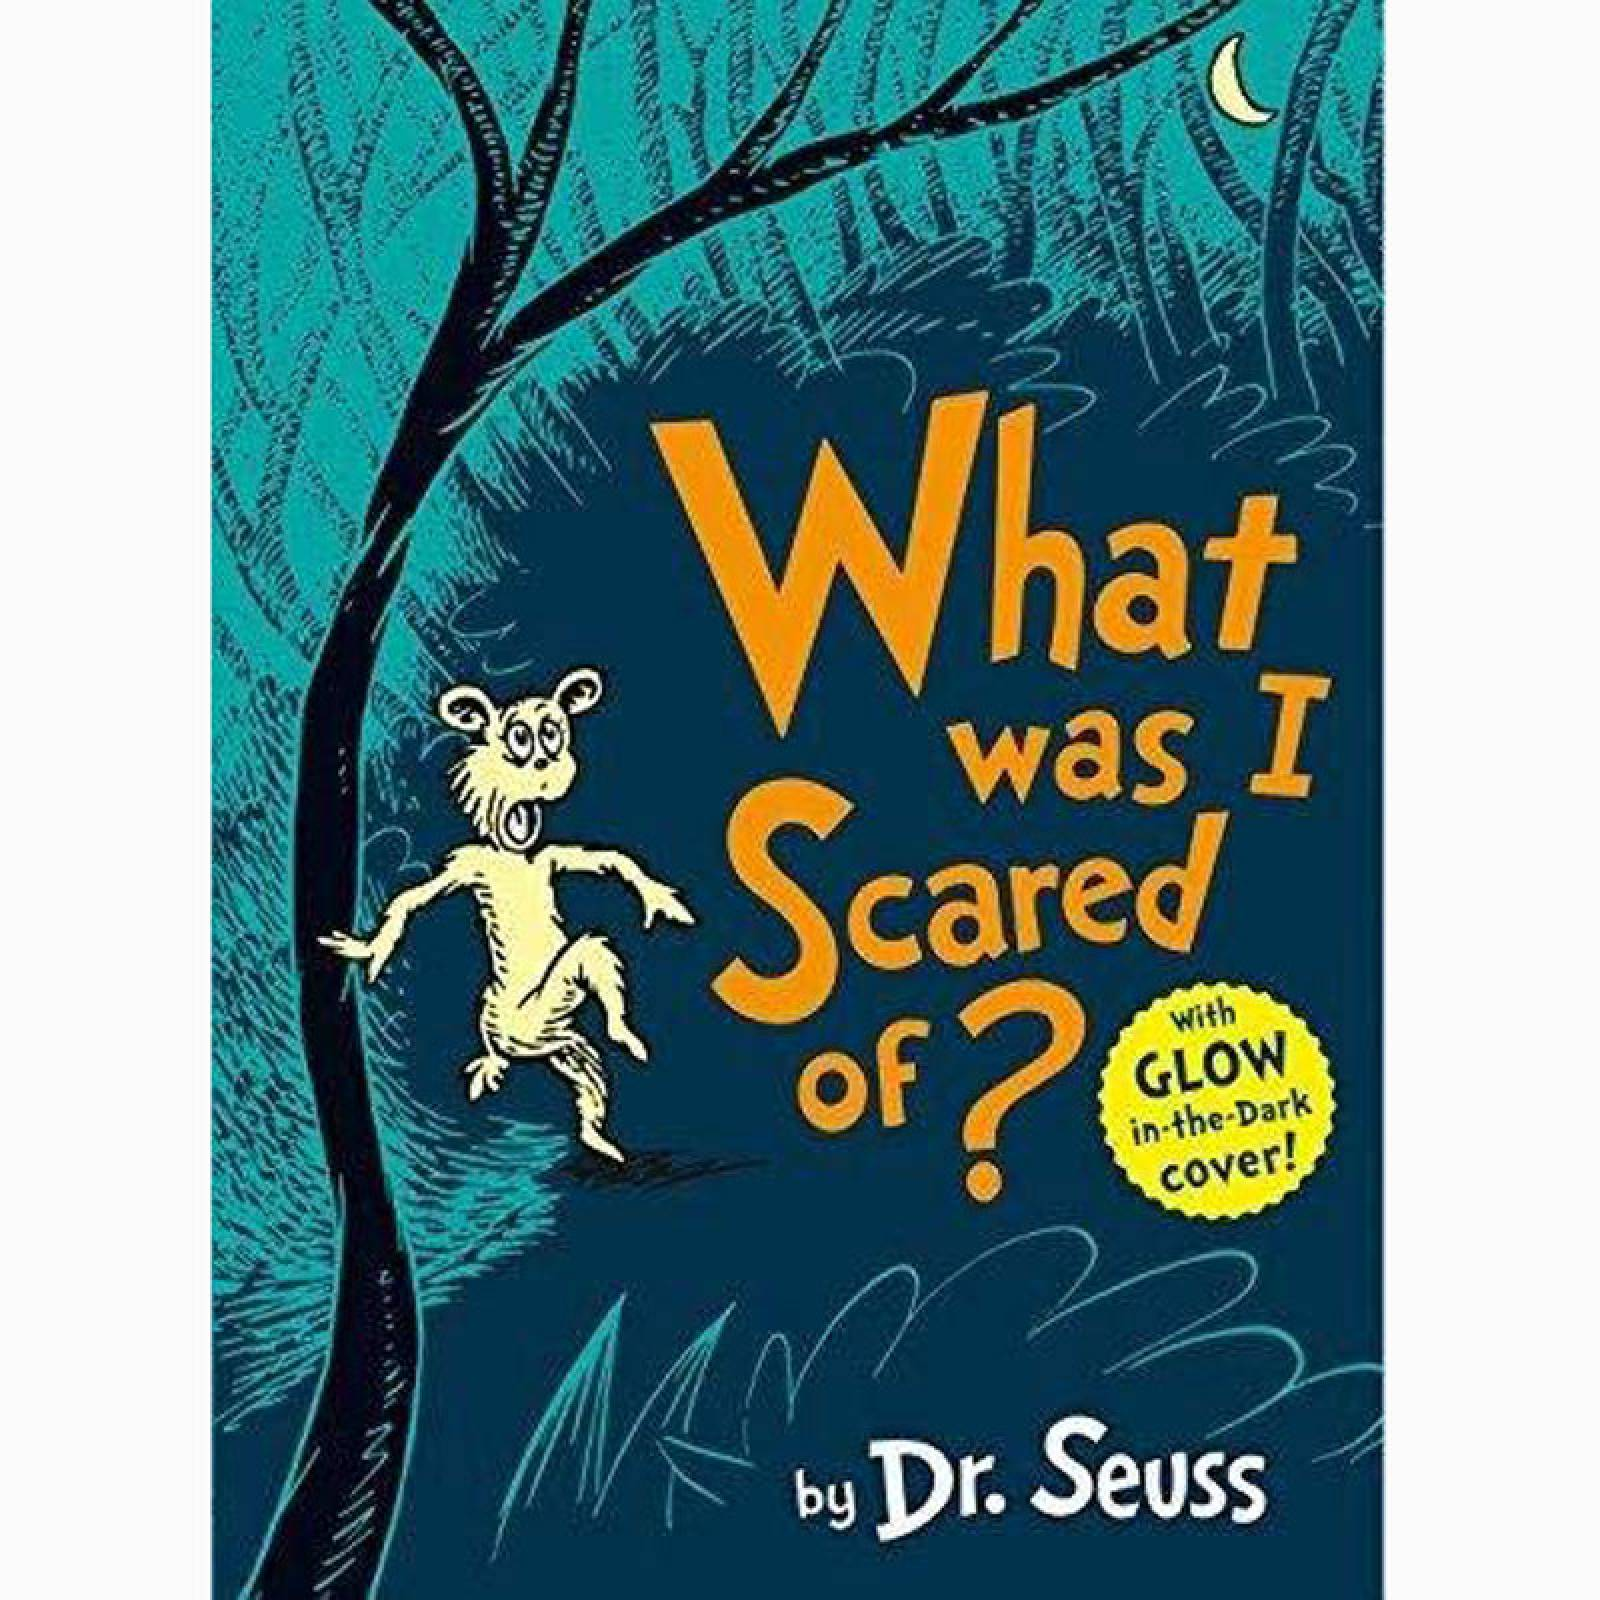 What Was I Scared Of? By Dr. Seuss - Paperback Book